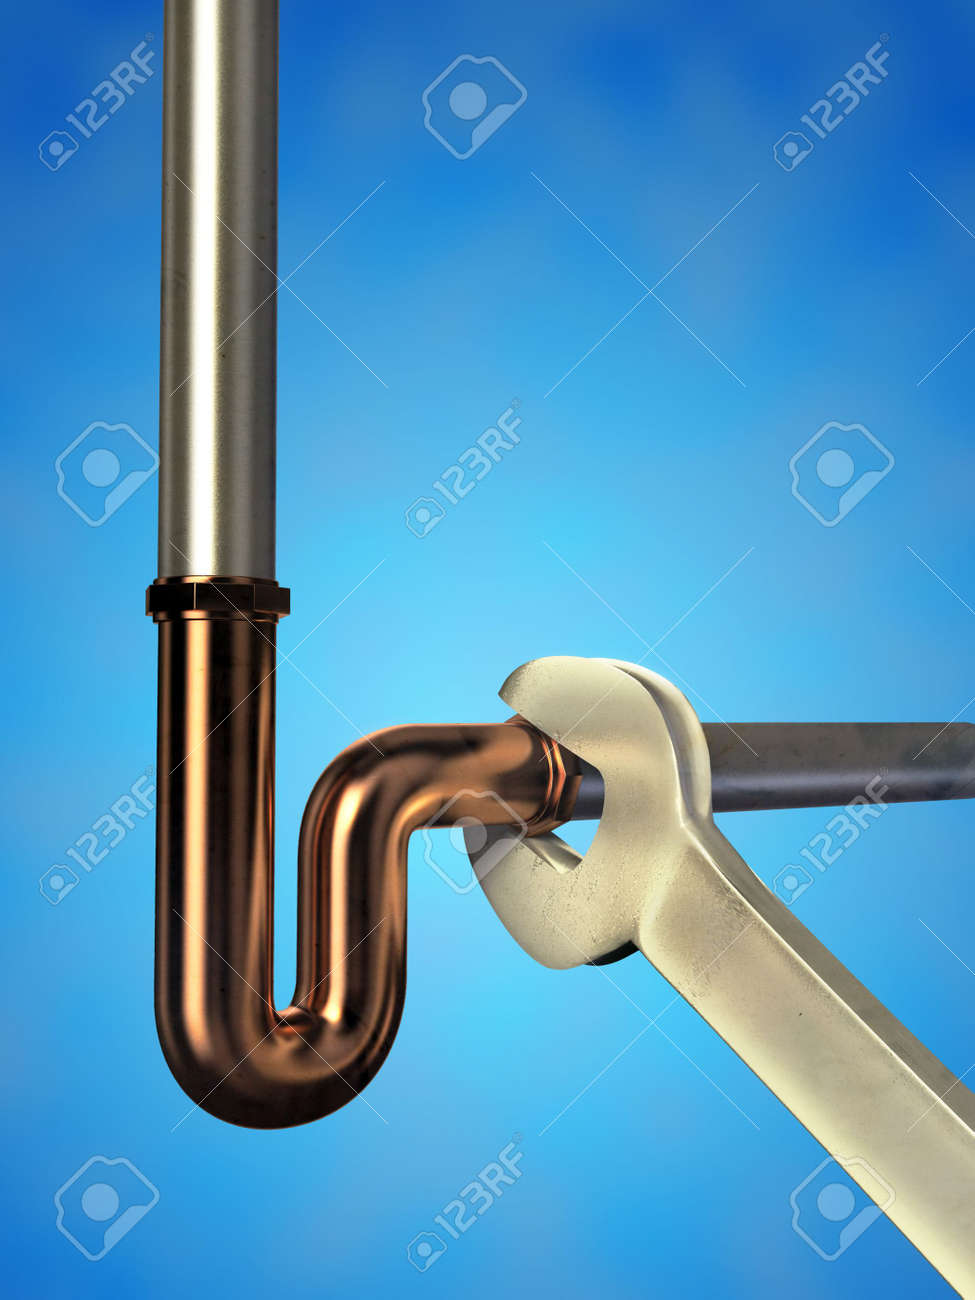 Wench fastening some metal pipes. Digital illustration. Stock Photo - 3597943